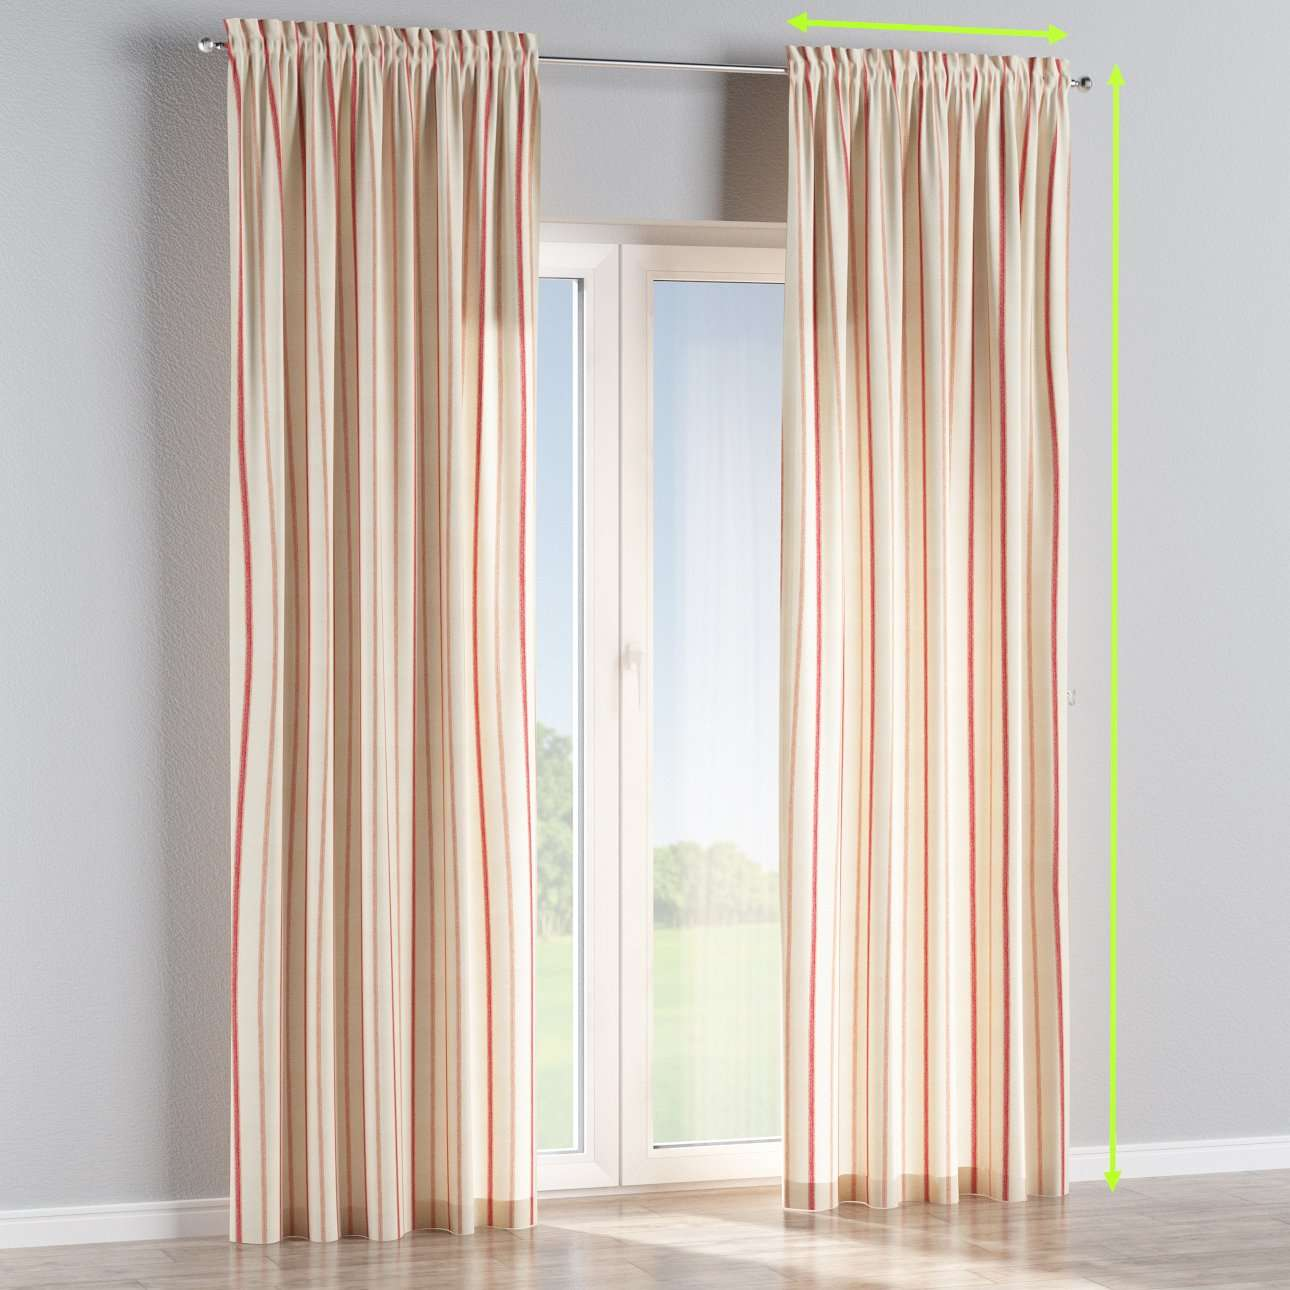 Slot and frill lined curtains in collection Avinon, fabric: 129-15